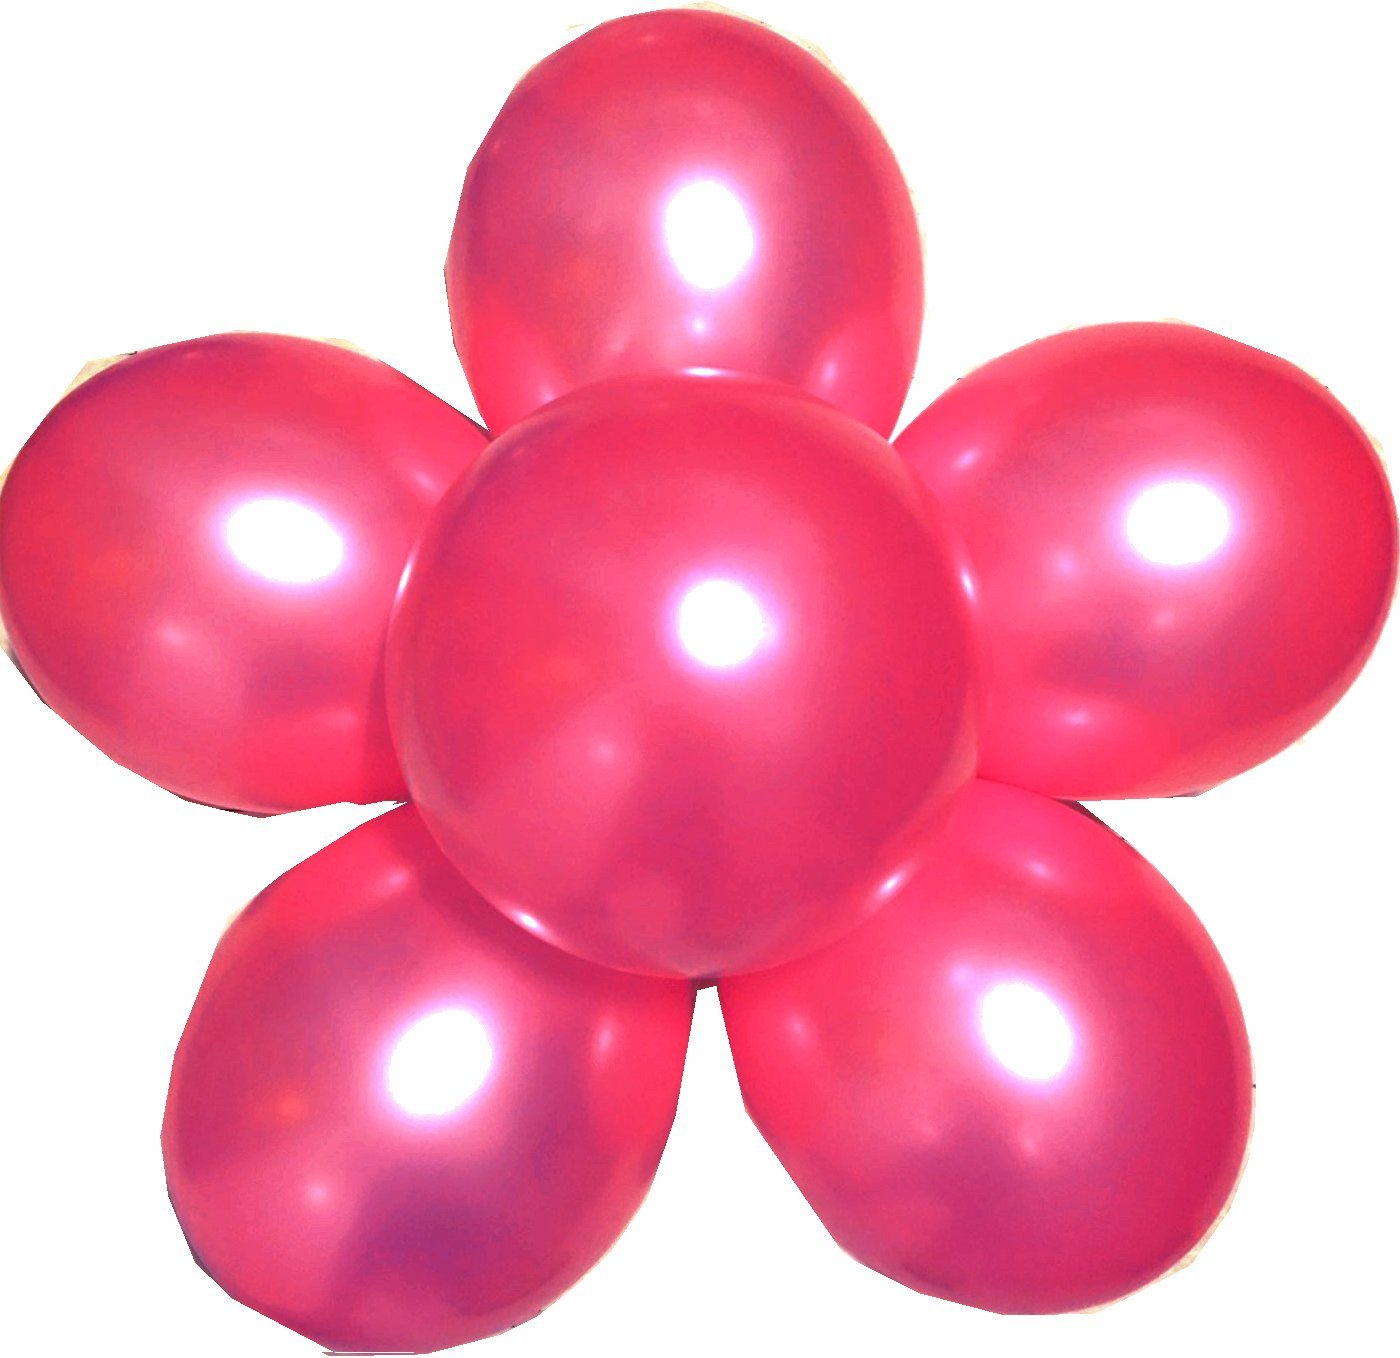 Elecrainbow 100 Pack 12 inch 3.2 g/pc Thicken Round Metallic Pearlescent Latex Balloons - Shining Rose Red Balloons for Party Supplies and Decorations